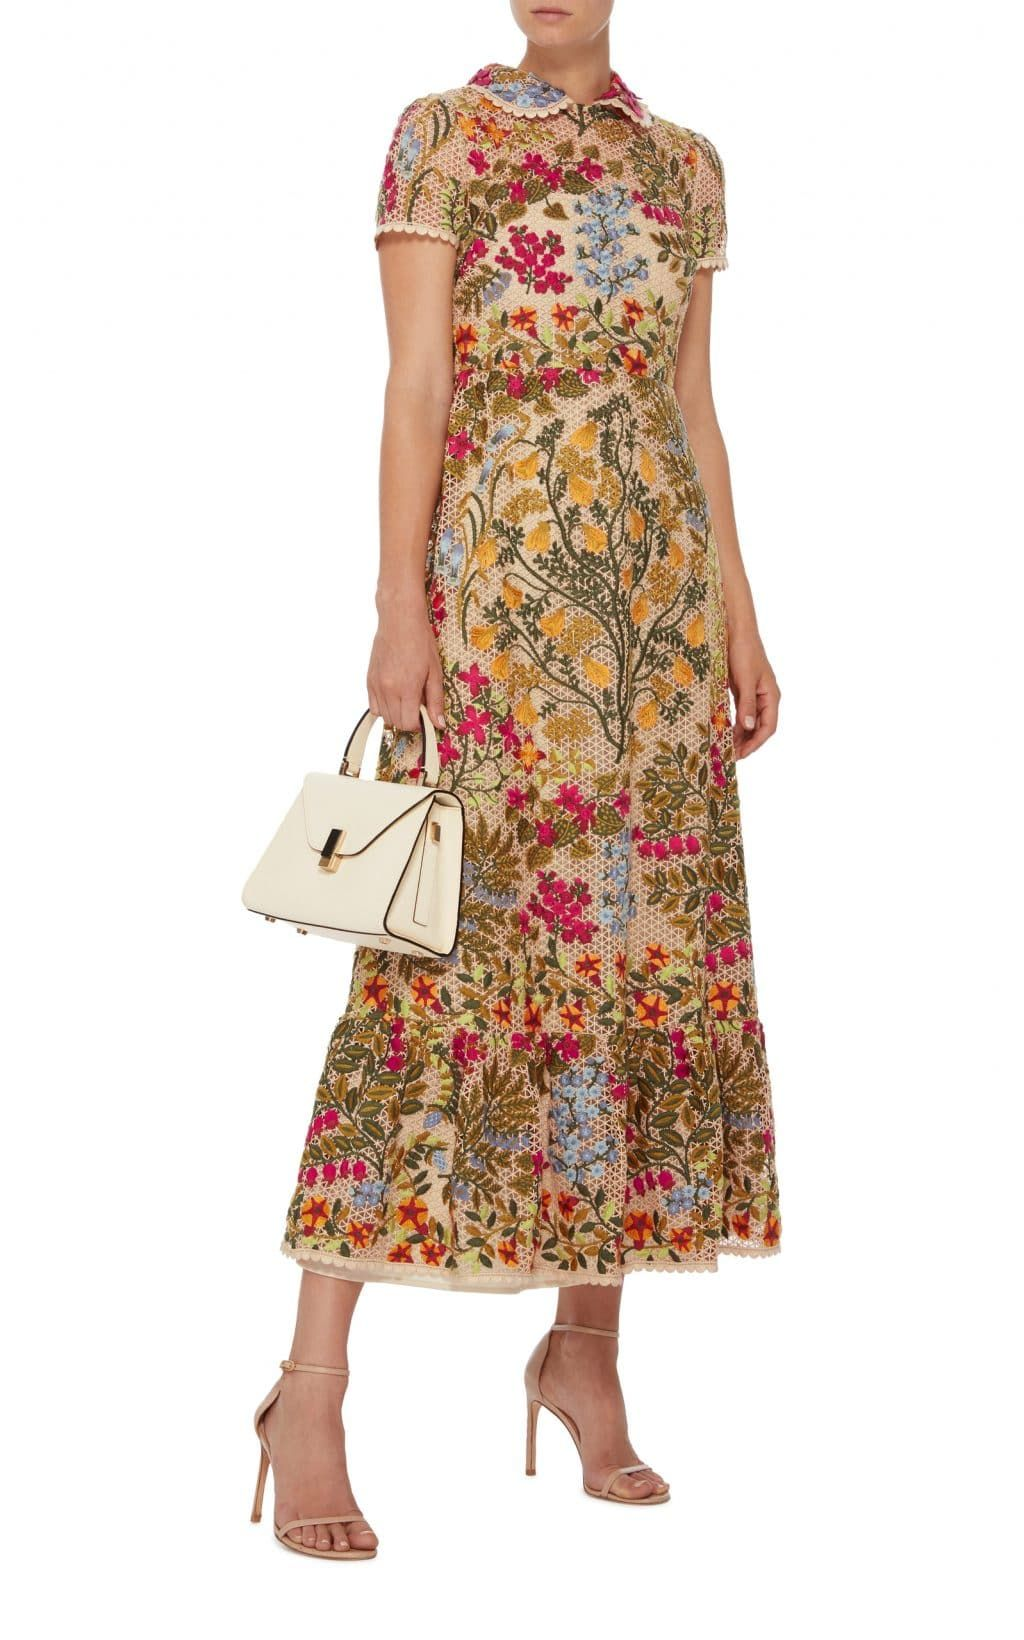 e1c4fc7164 RED VALENTINO Floral Embroidered Macramé Beige Dress - We Select Dresses